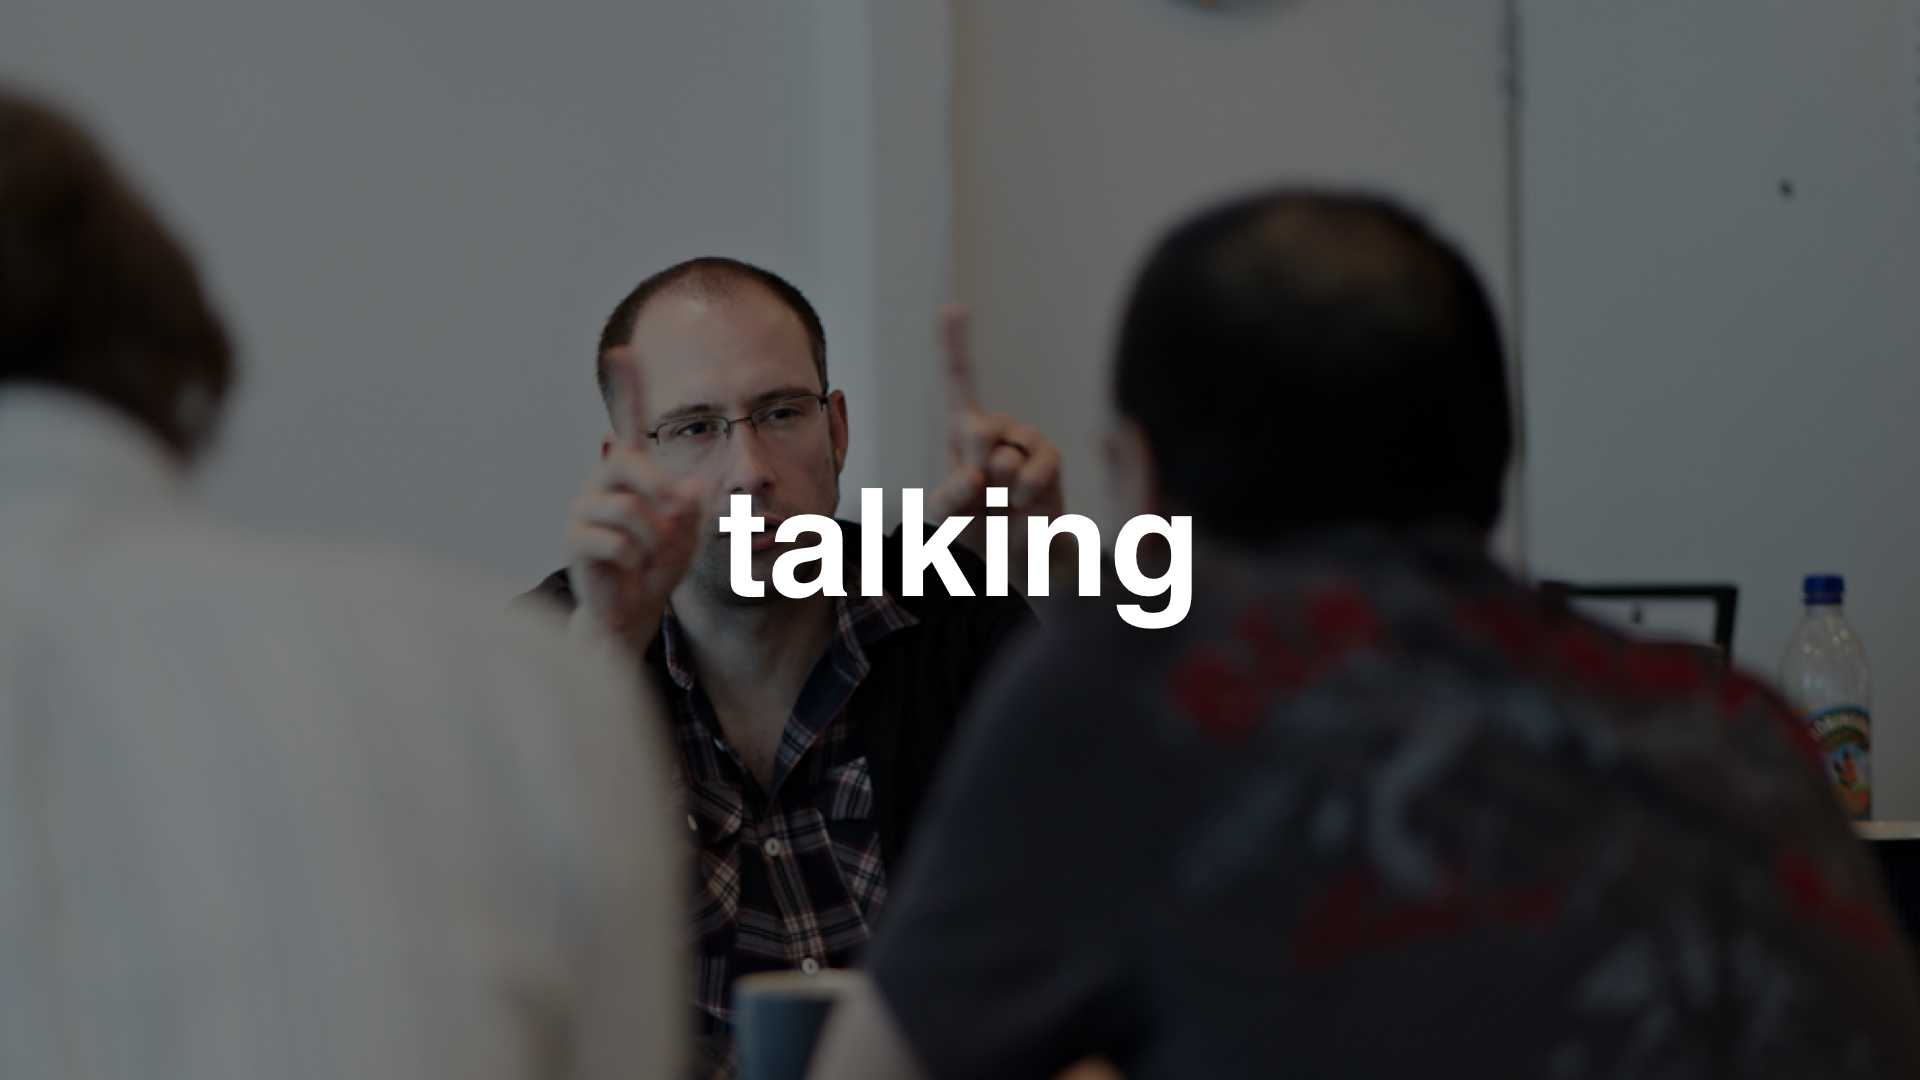 A photo of some people talking - text: talking